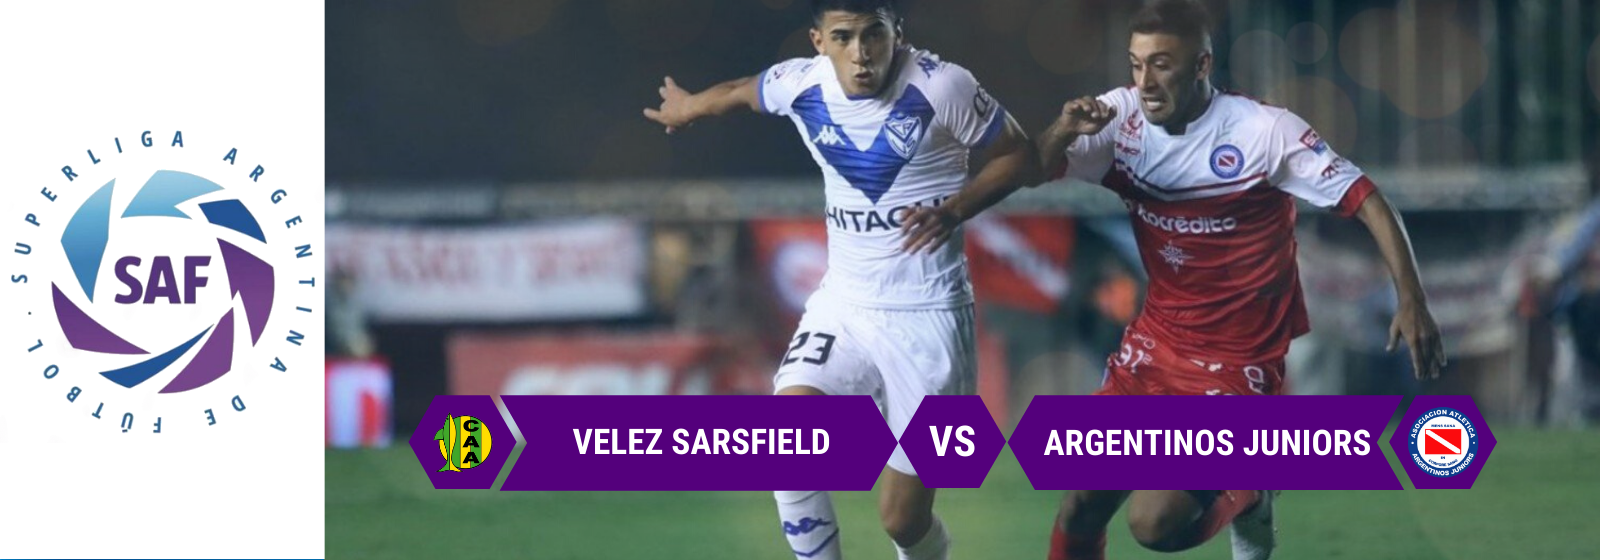 Asianconnect: Velez vs Argentinos Jrs Odds for March 01, 2020